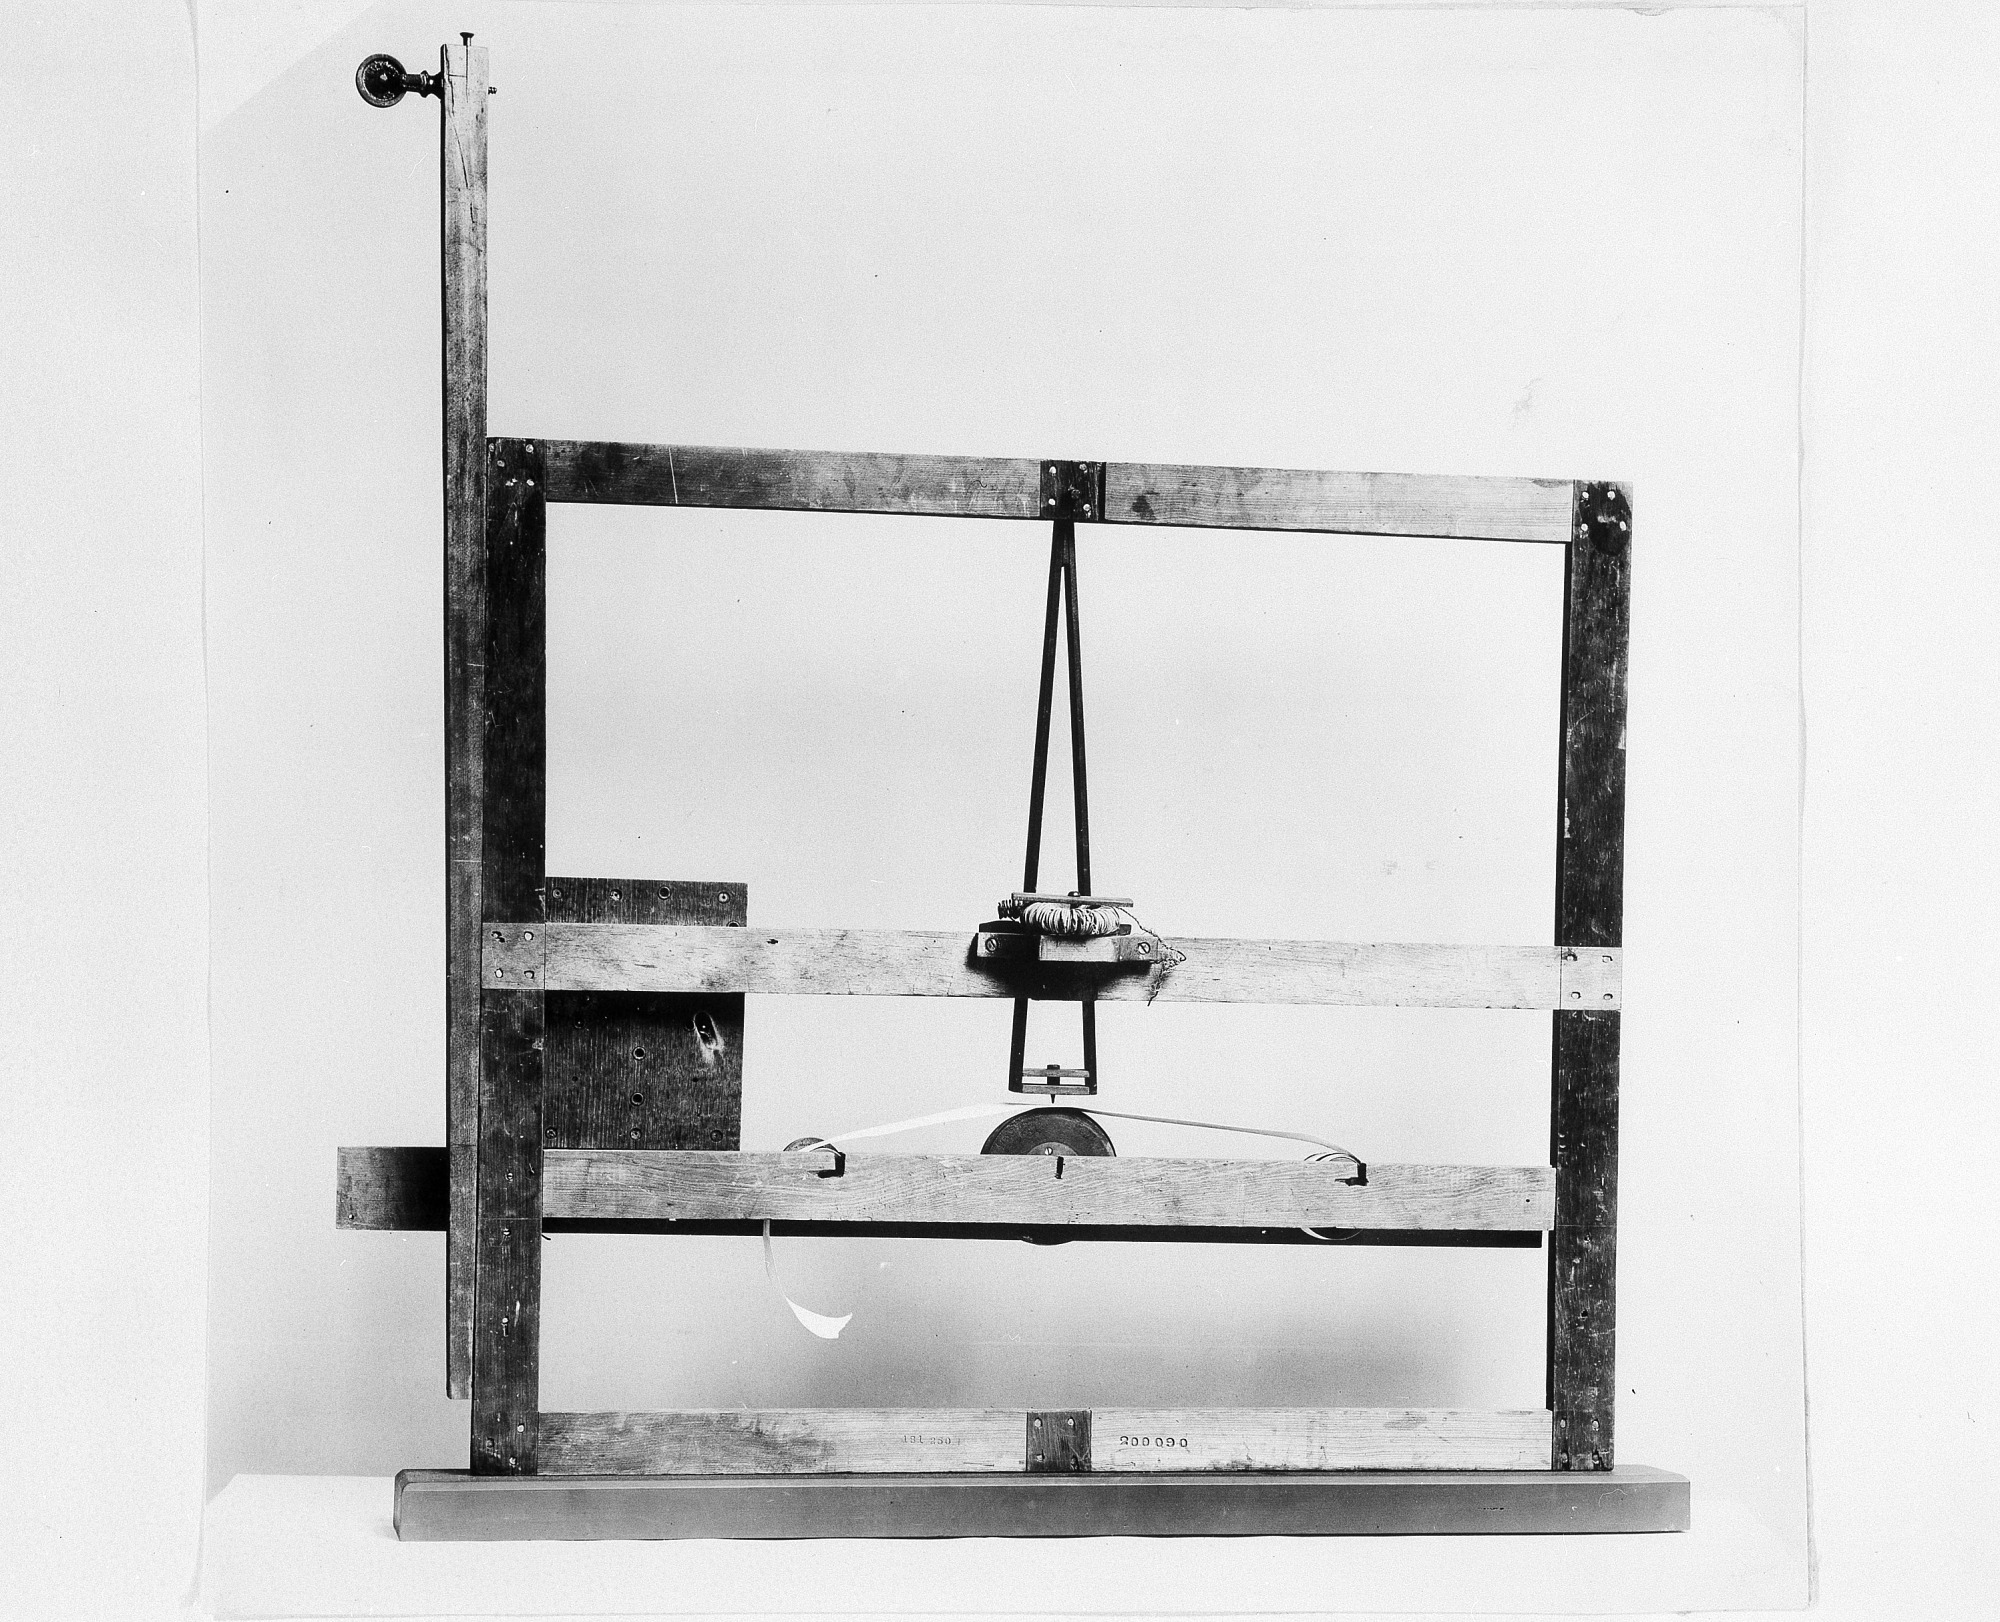 Image is of Morse's 1837 experimental telegraph, Smithsonian Institution Archives, negative number 91-3689.